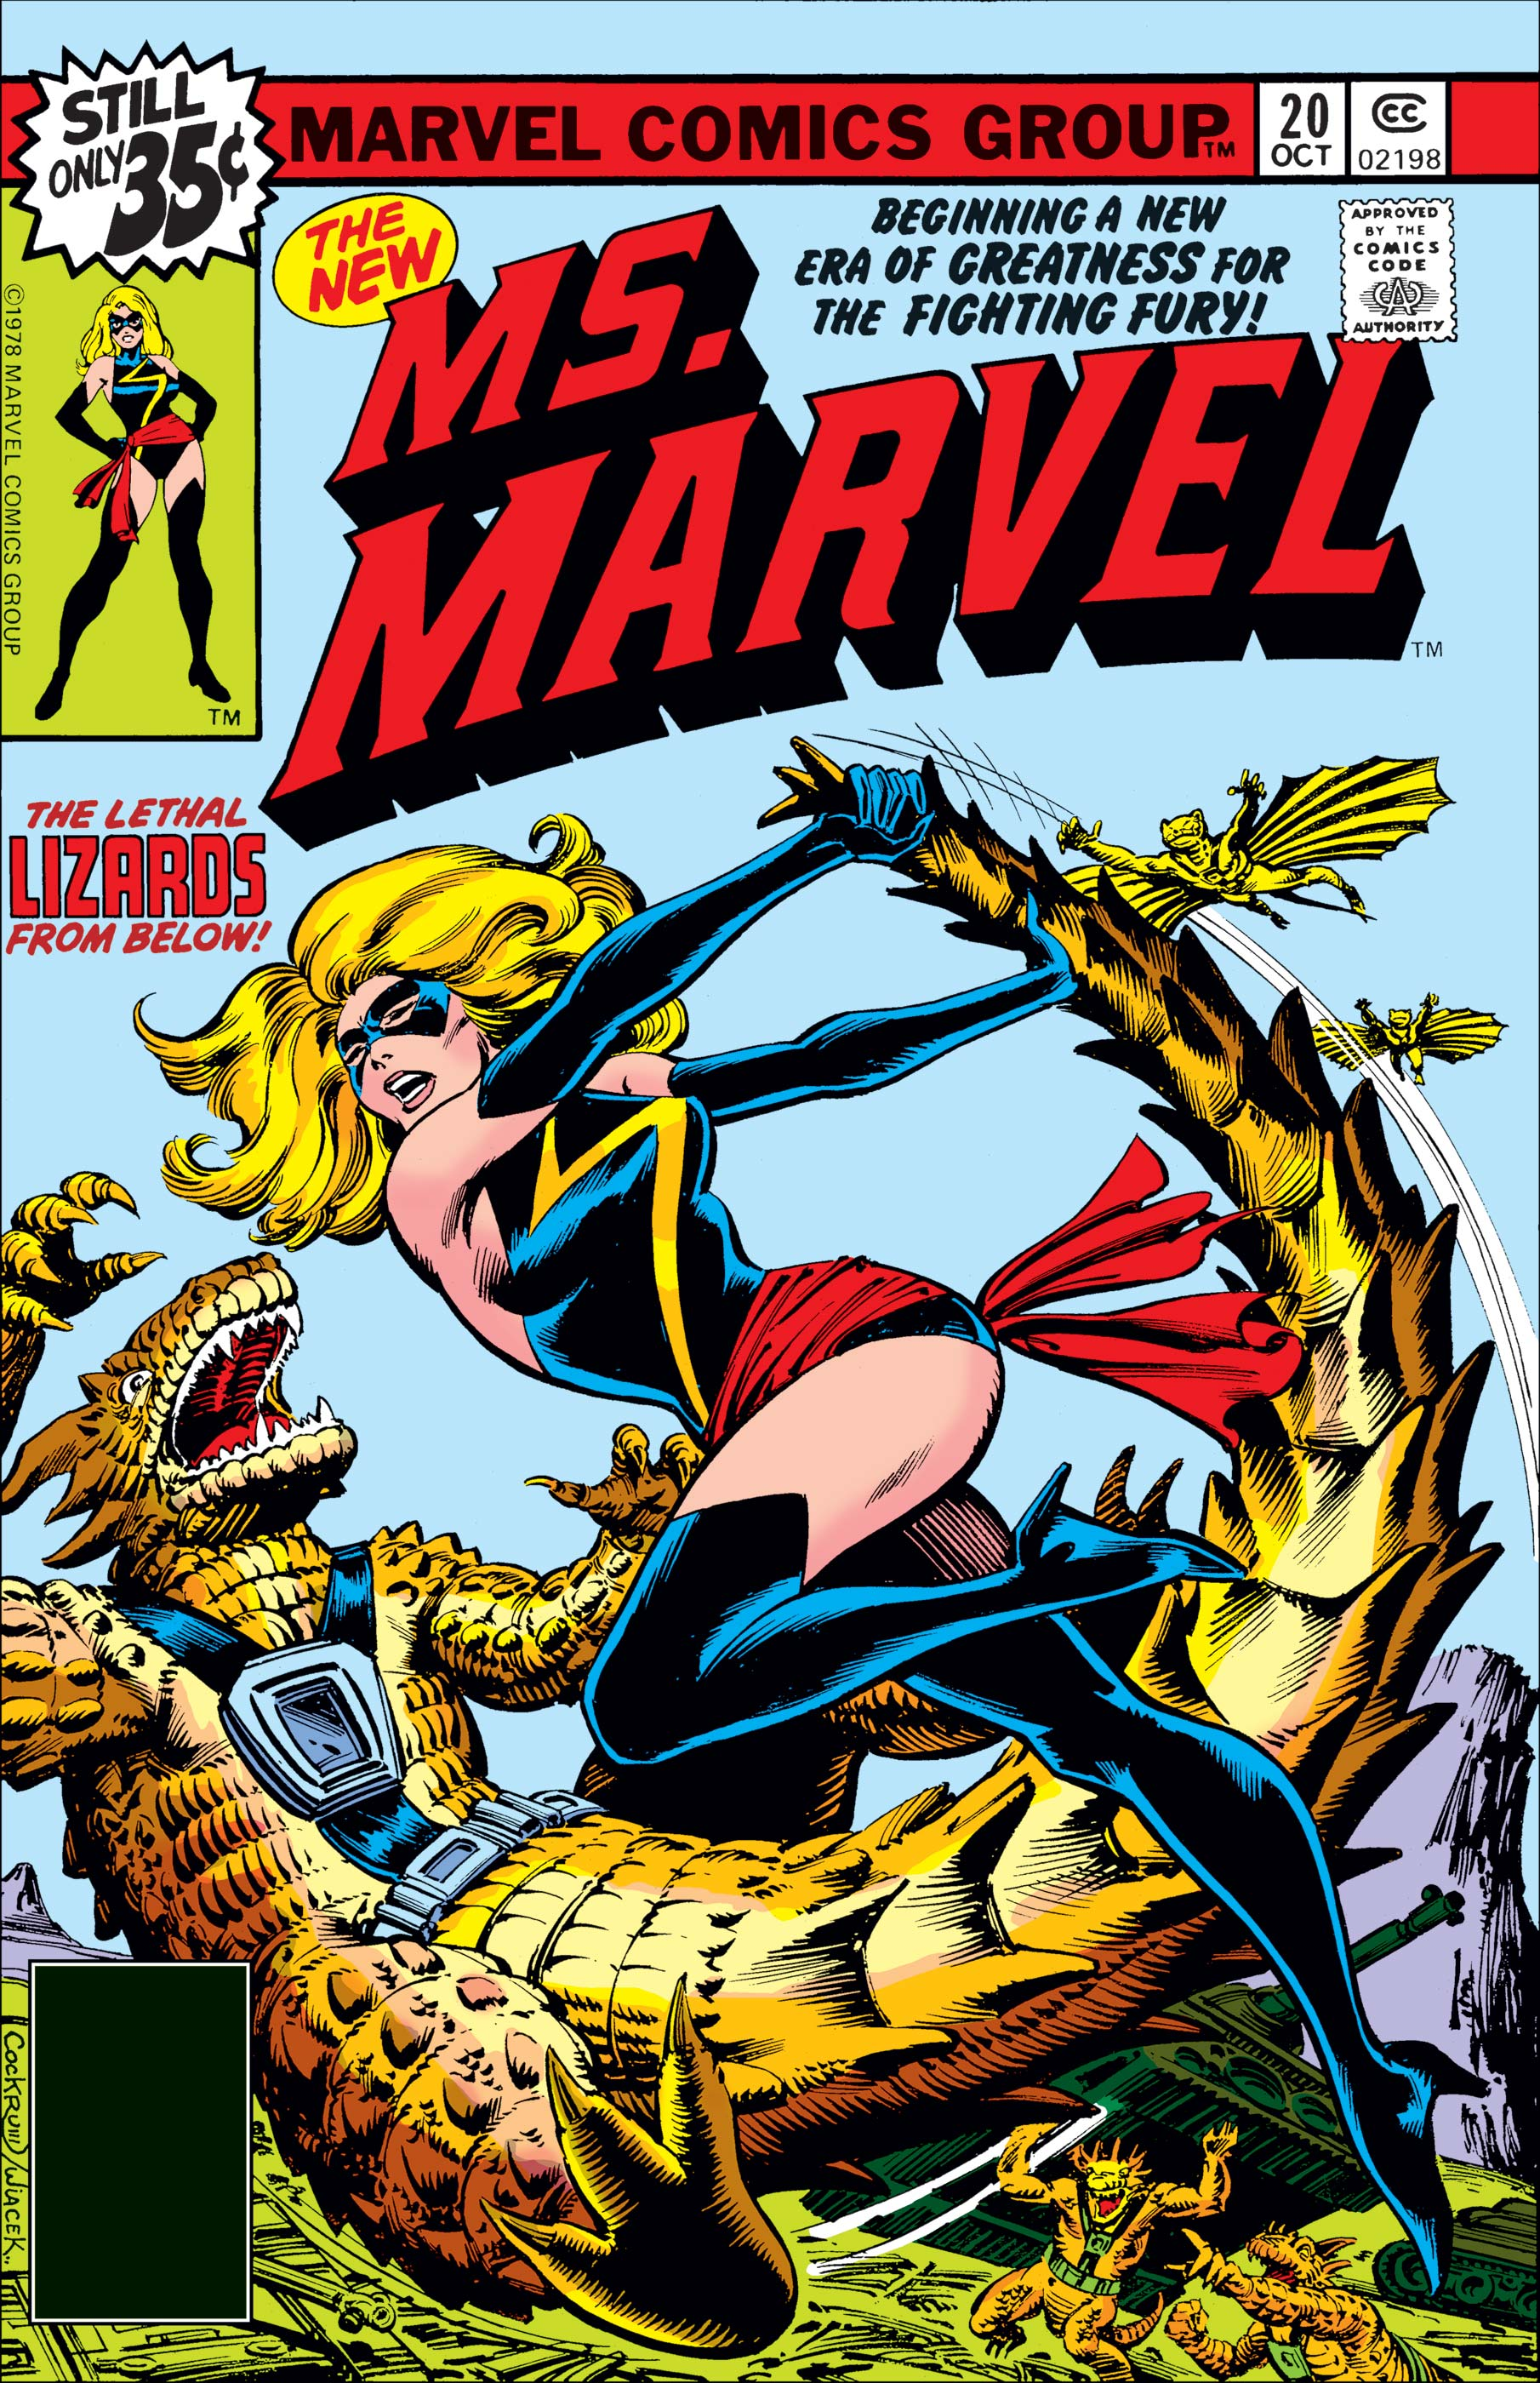 Ms. Marvel (1977) #20